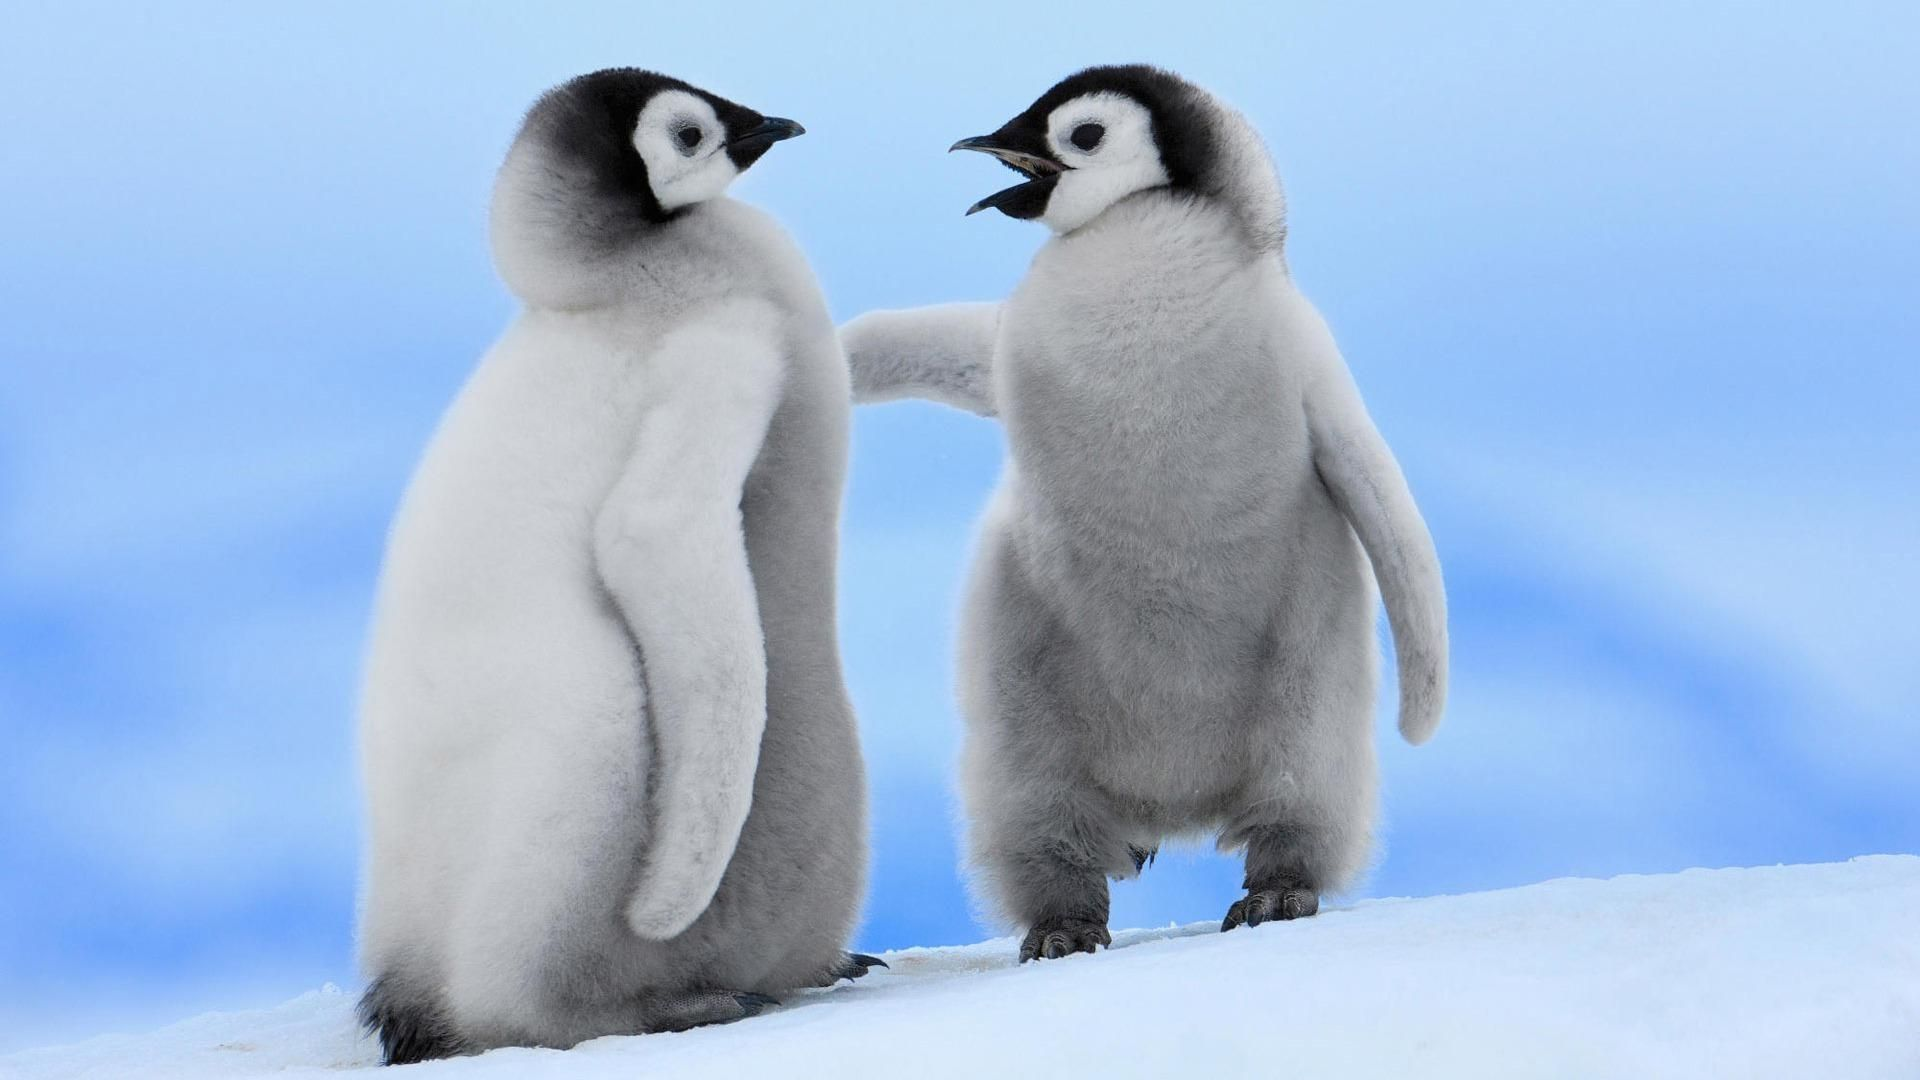 Penguin Hd Wallpapers And Backgrounds Baby Animals Pictures Cute Baby Penguin Penguins